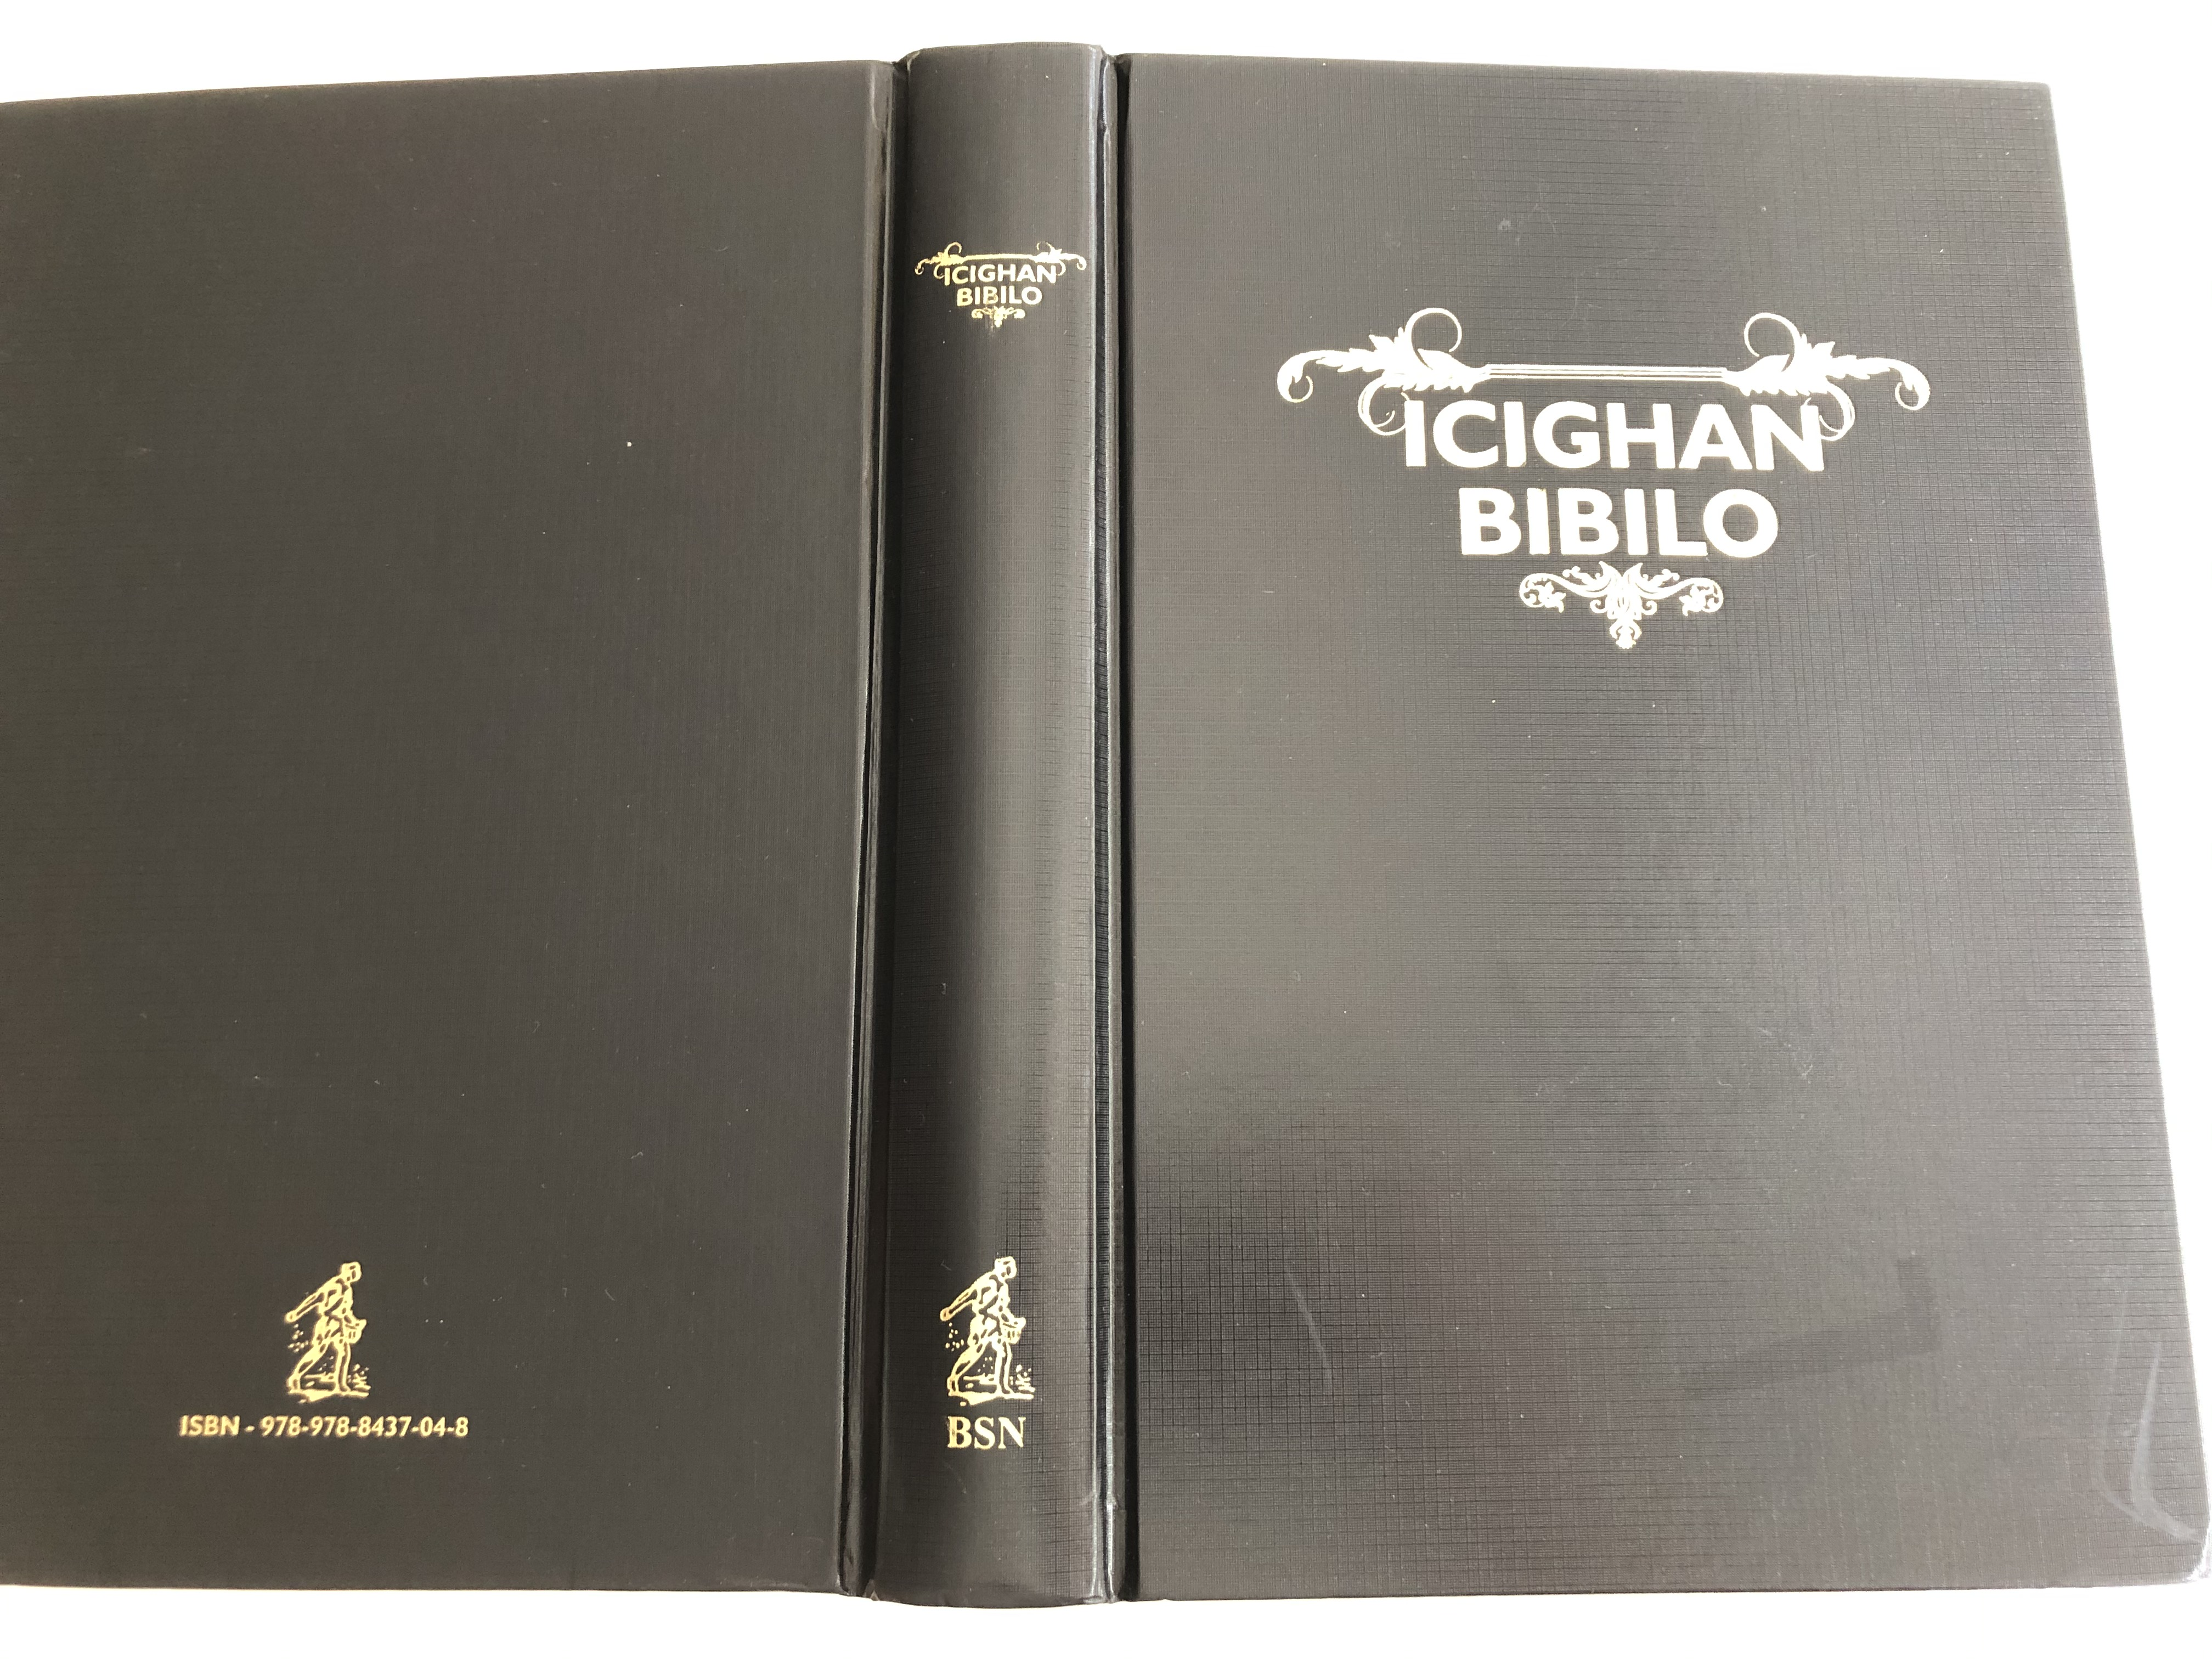 icighan-bibilo-holy-bible-in-tiv-language-hardcover-black-bsn-bible-society-of-nigeria-2014-edition-18-.jpg